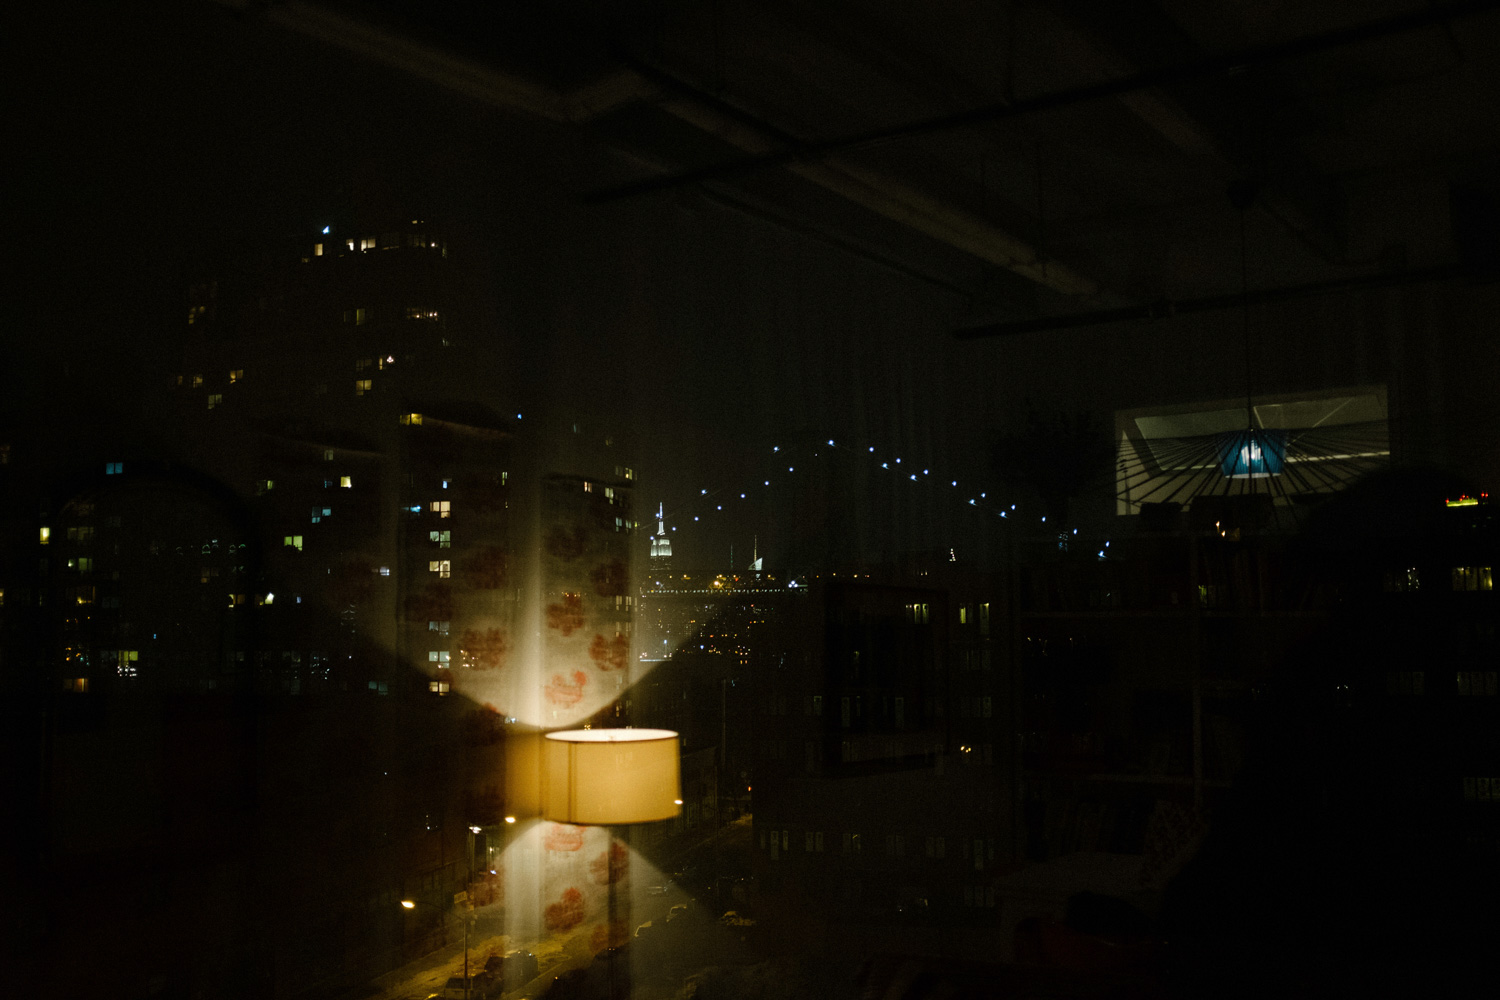 window reflection with Manhattan in the distance